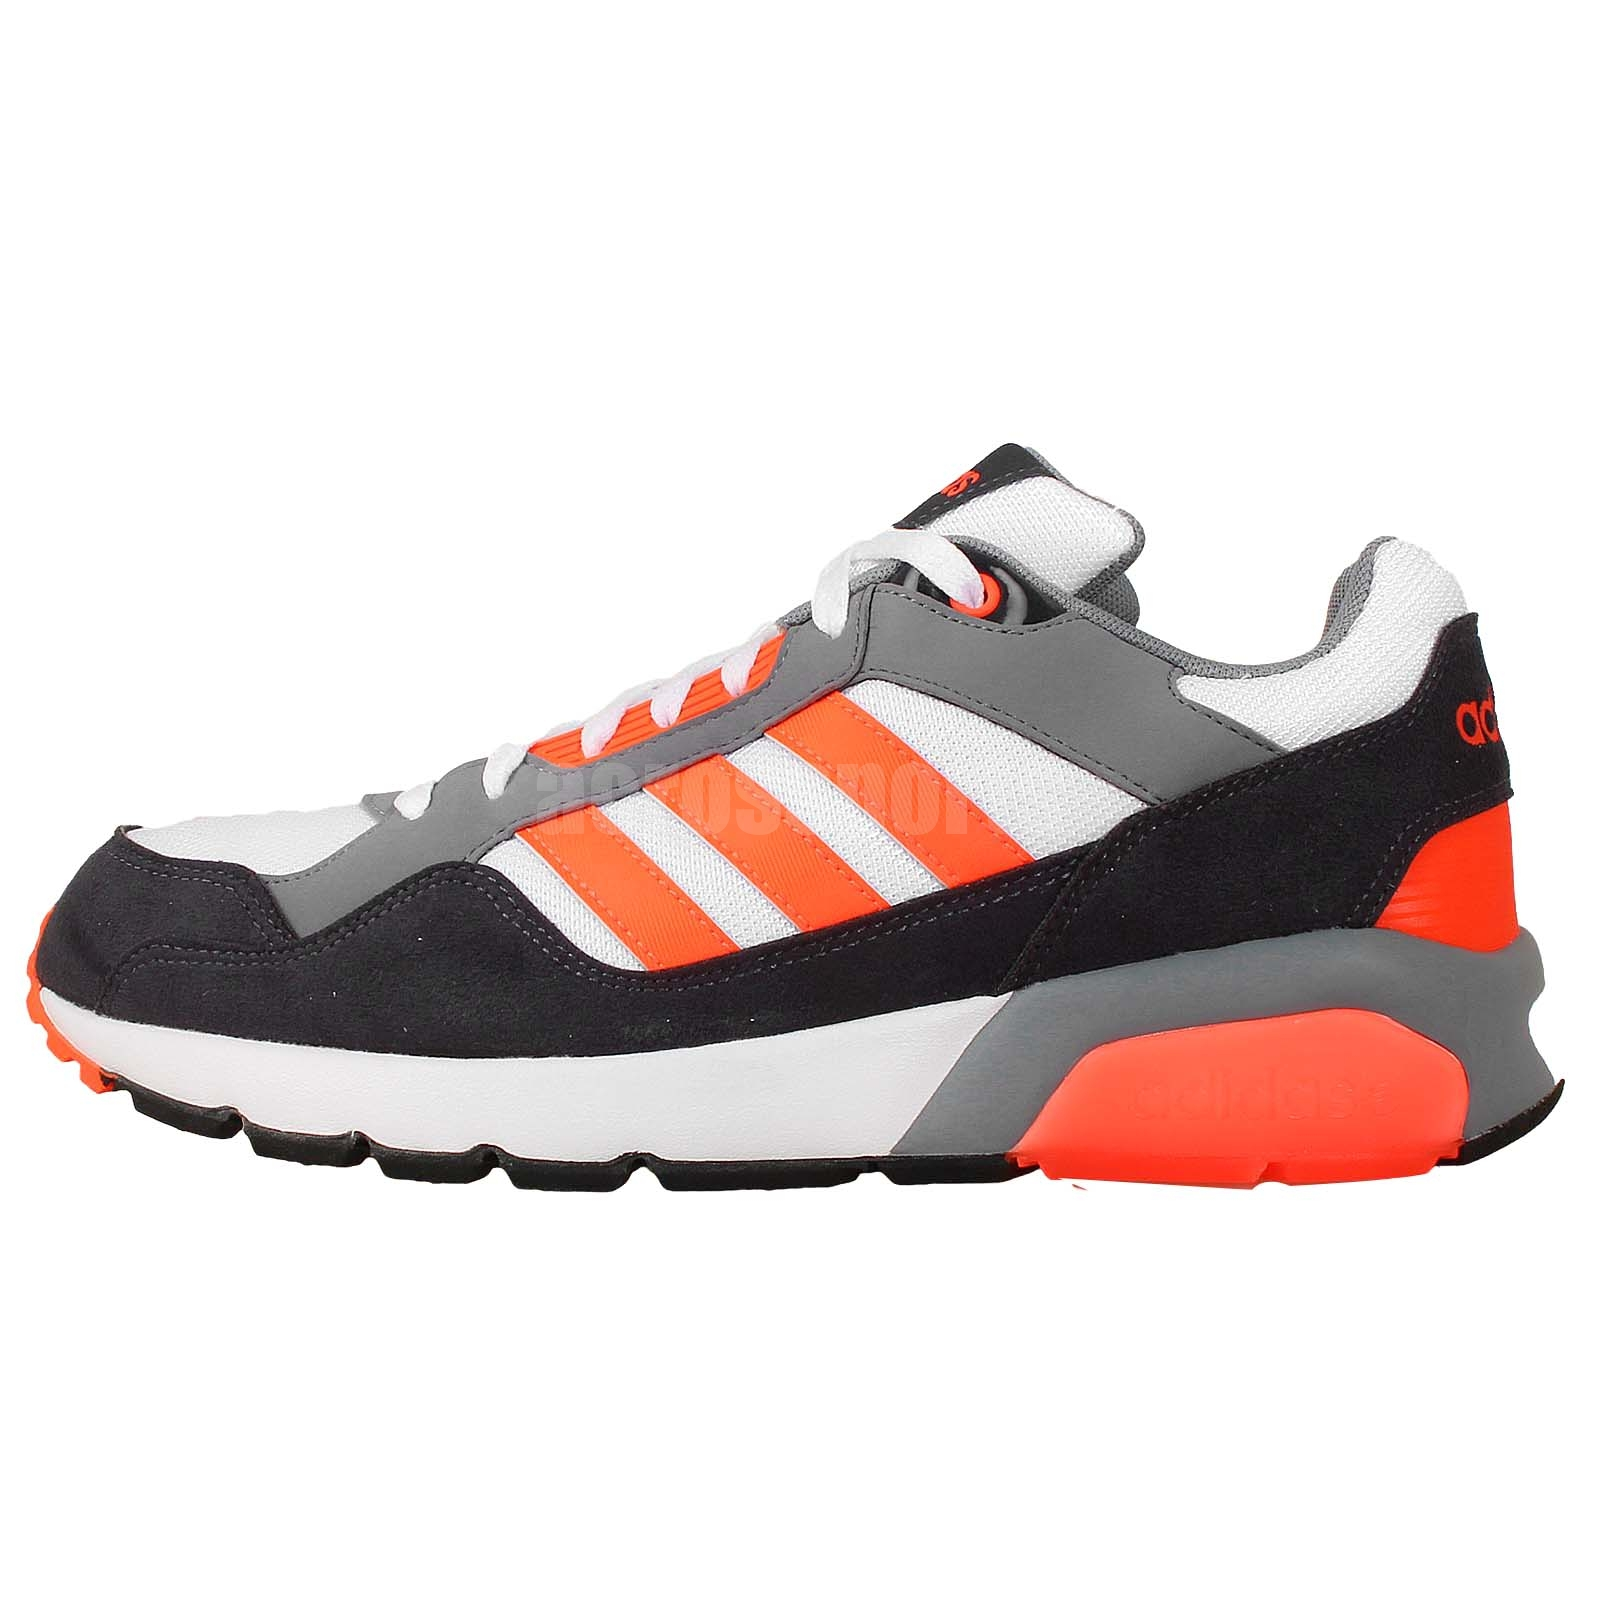 adidas run9tis neo label white orange 2014 mens fashion. Black Bedroom Furniture Sets. Home Design Ideas